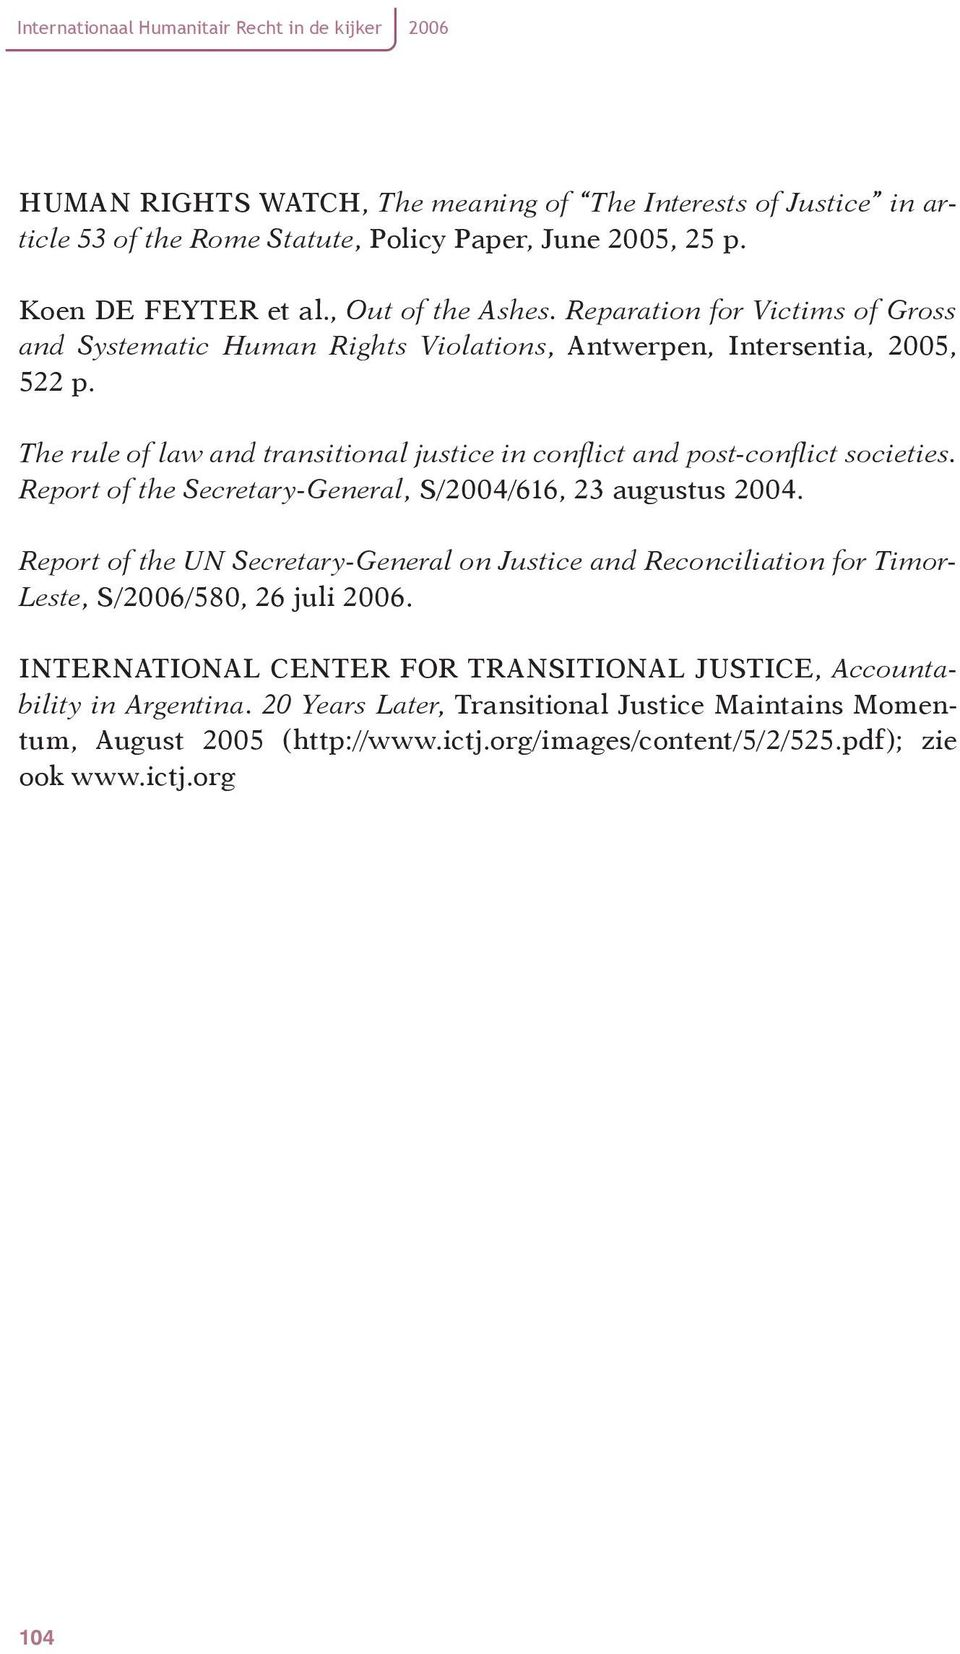 The rule of law and transitional justice in conflict and post-conflict societies. Report of the Secretary-General, S/2004/616, 23 augustus 2004.